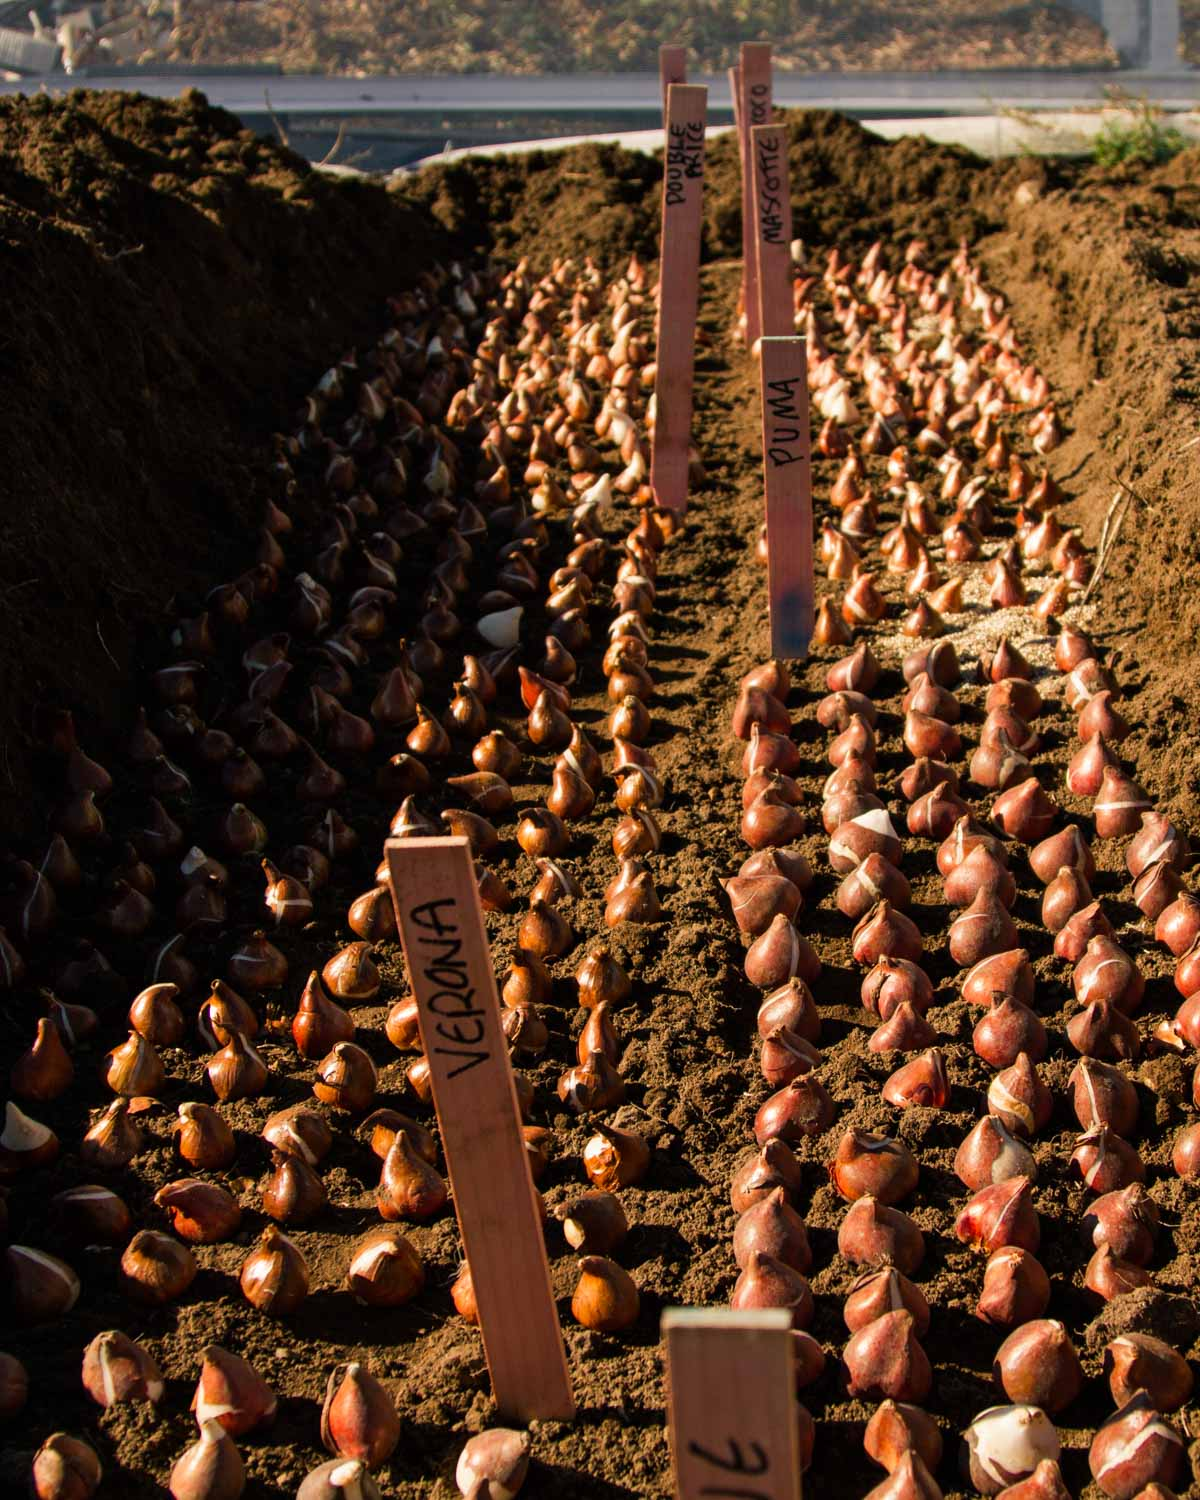 Planting Tulips in a trench